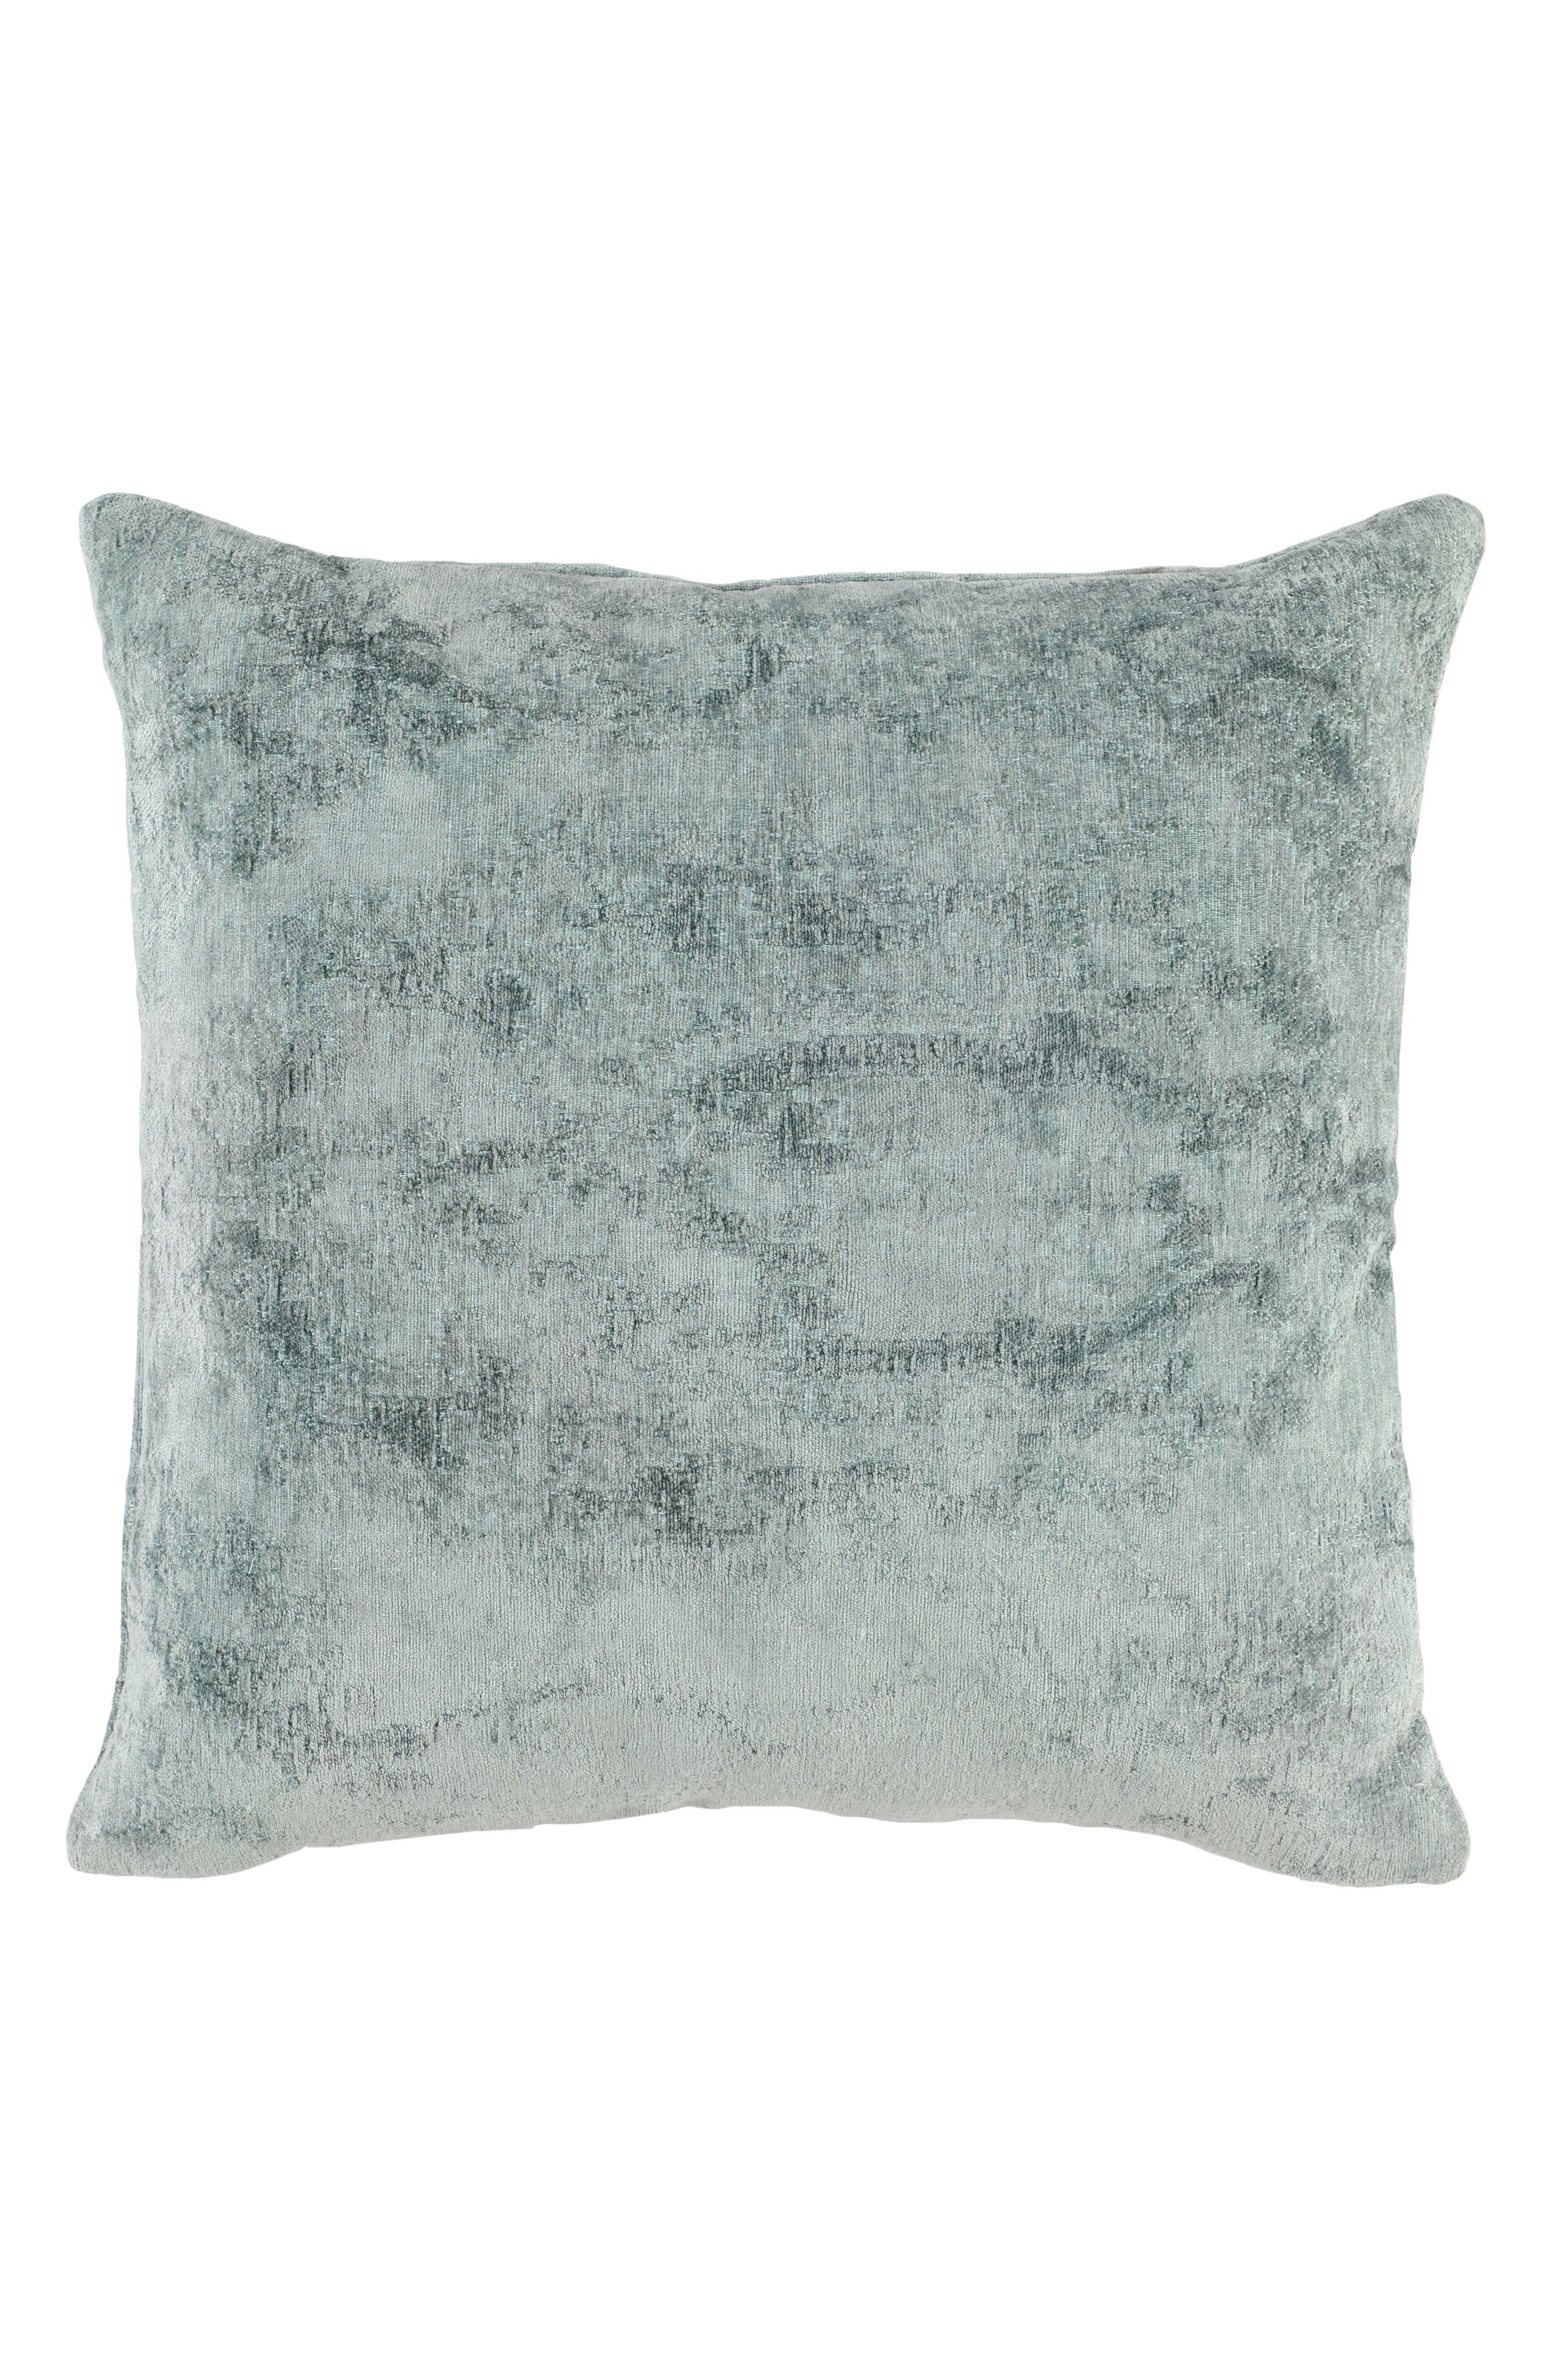 Oliver Accent Pillow,                             Main thumbnail 1, color,                             Sage